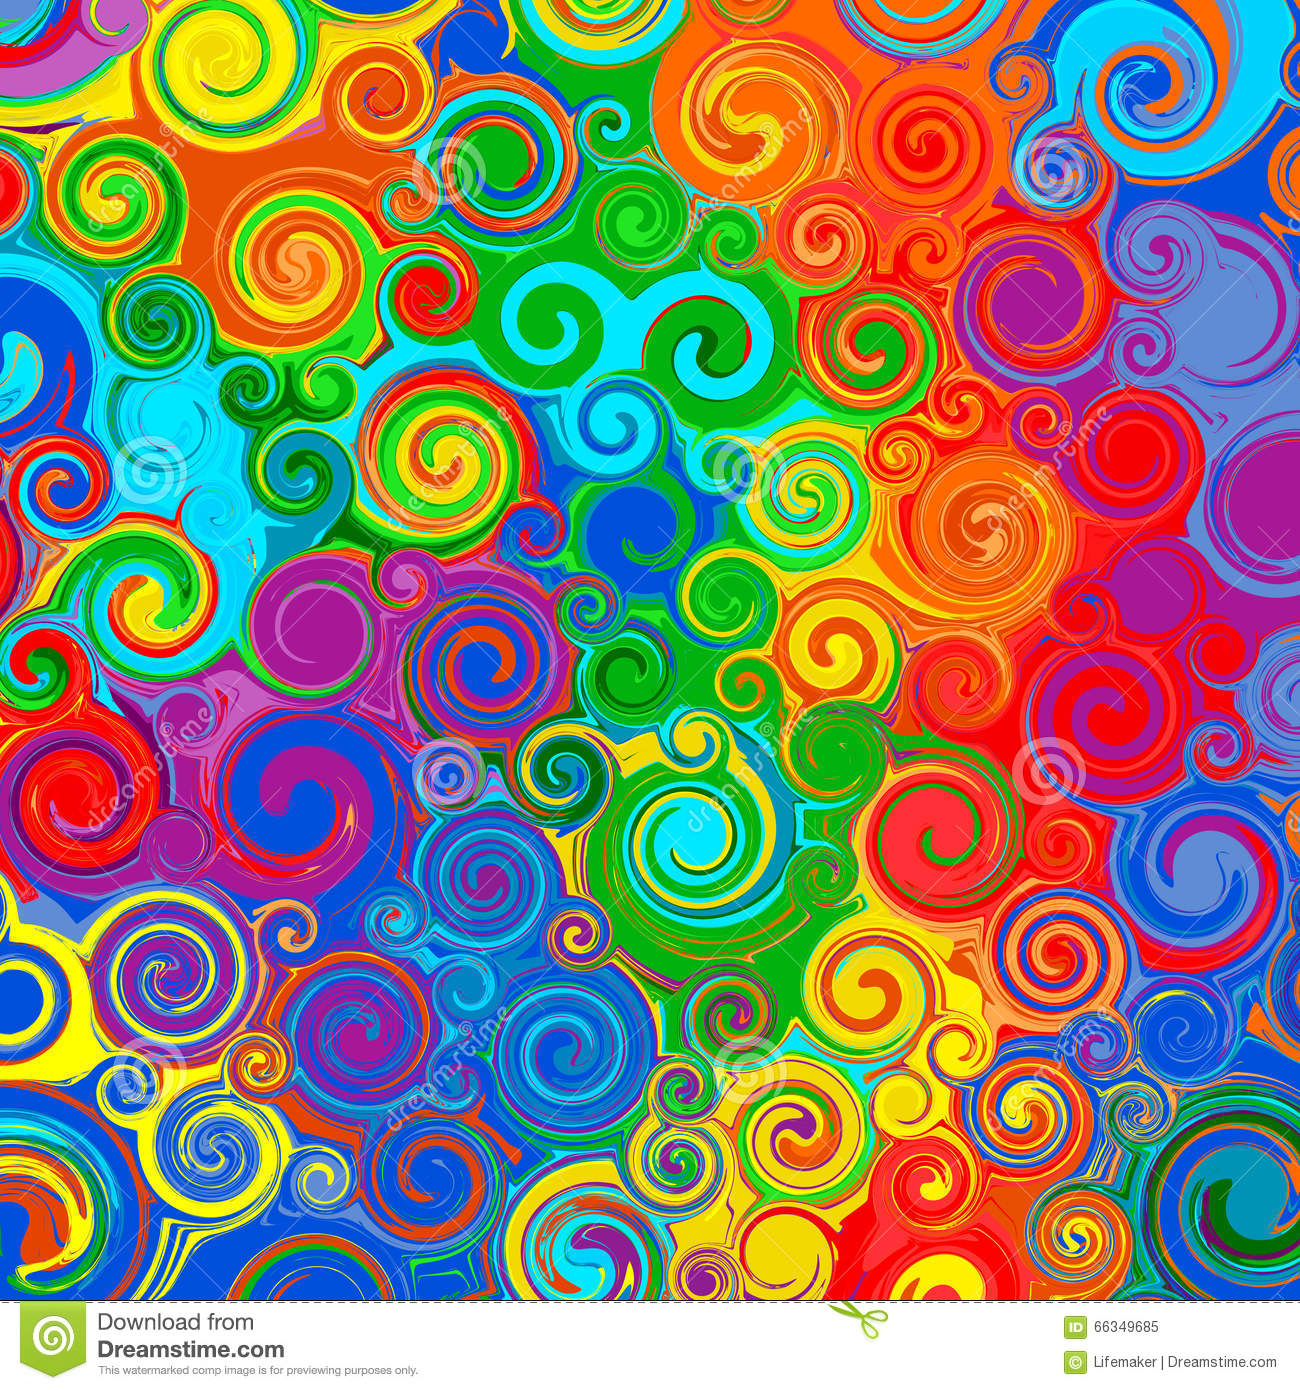 Colour Line Art Design : Abstract rainbow curved stripes color line art swirl